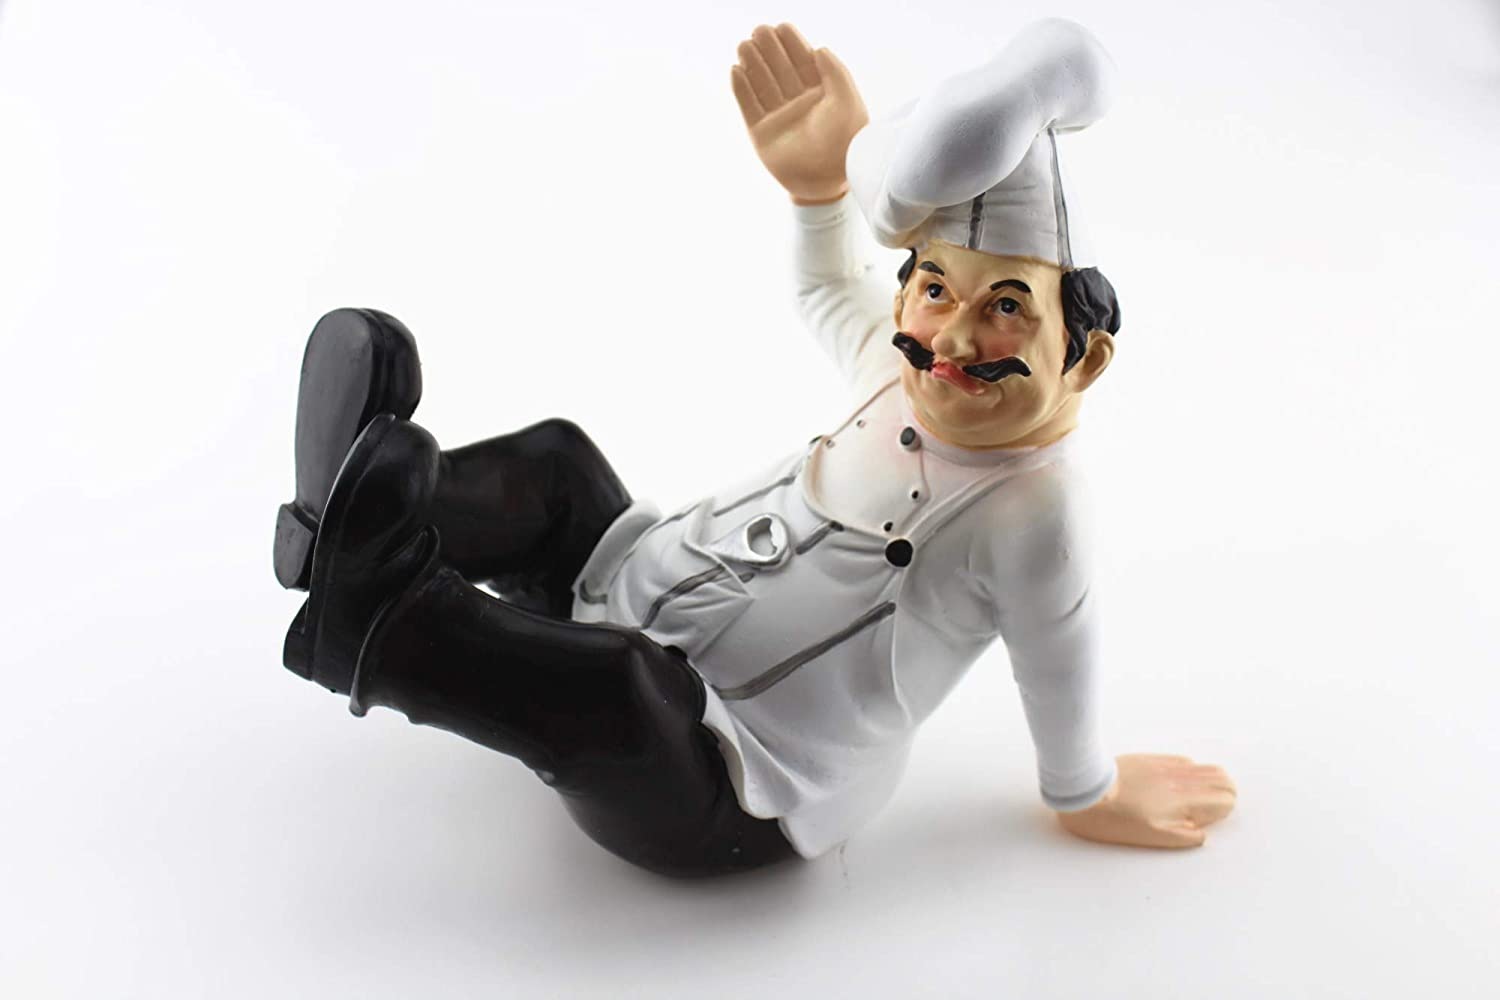 Wine Holder French Chef Waiter Decorative Display Stand Table Centerpiece Figurine for Country Cottage Decor As Collectible Housewarming Gifts (Wine Holder Sitting Chef)